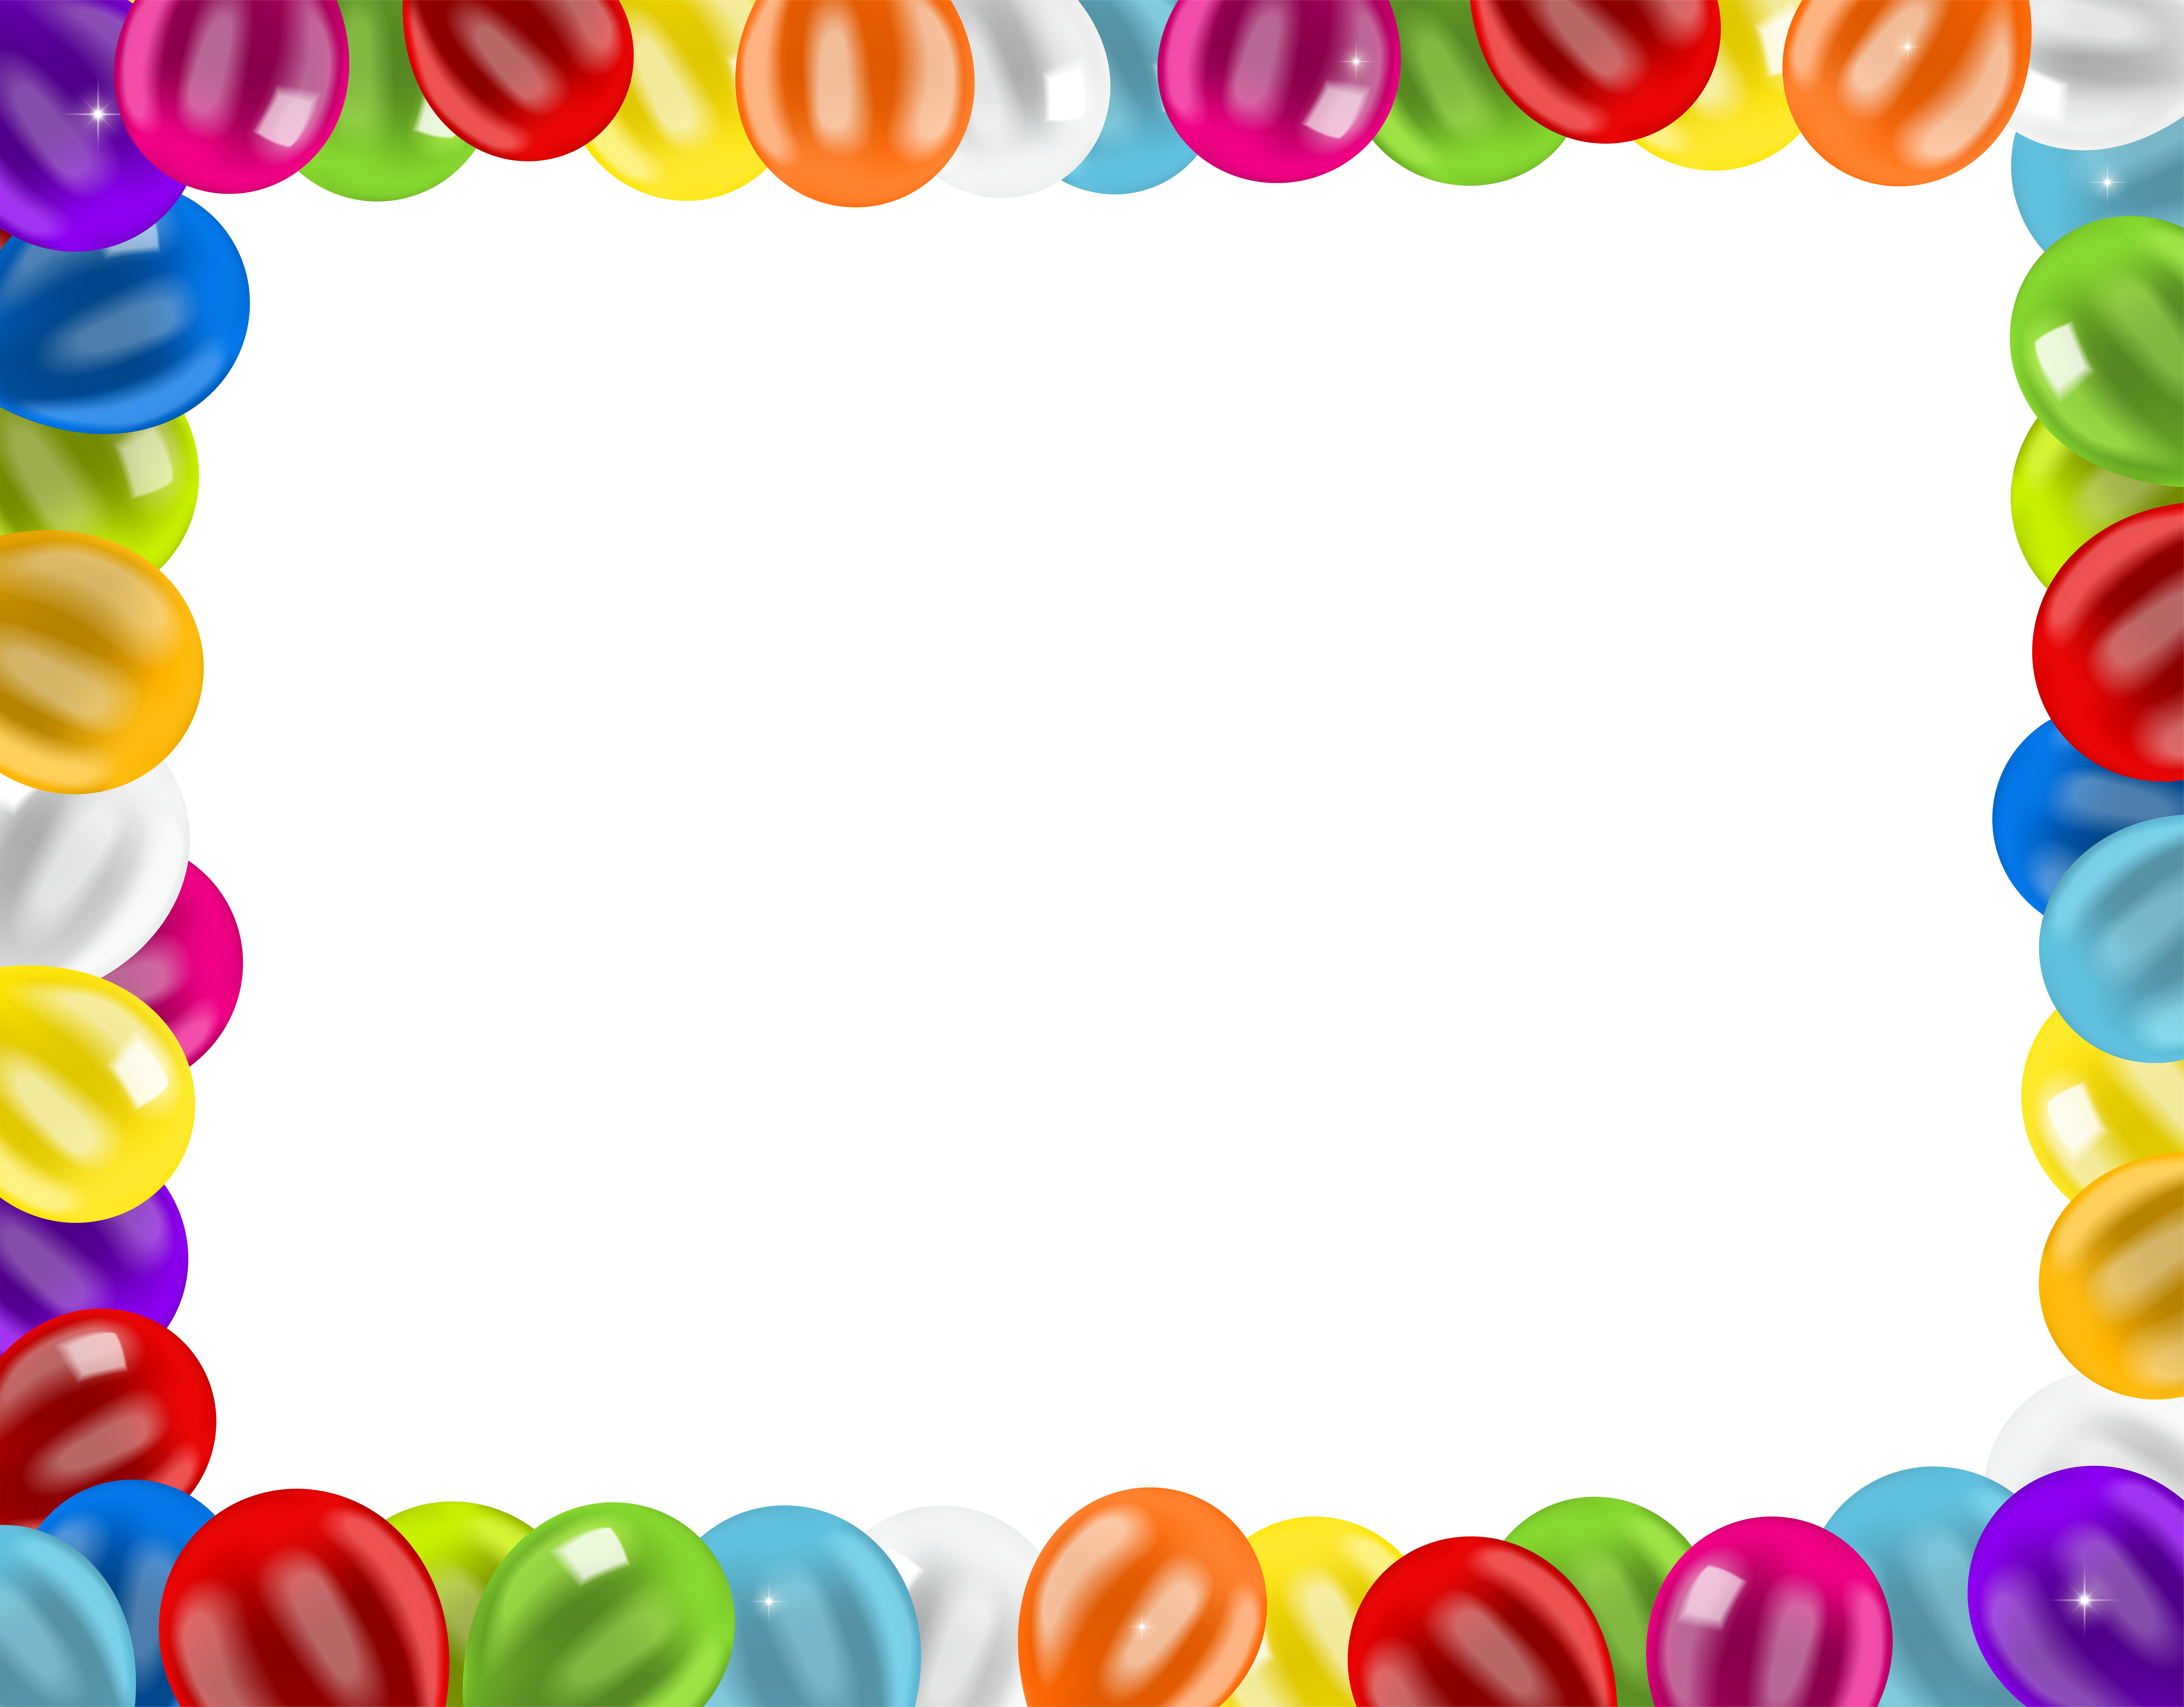 Birthday border png. Frame with balloons clip